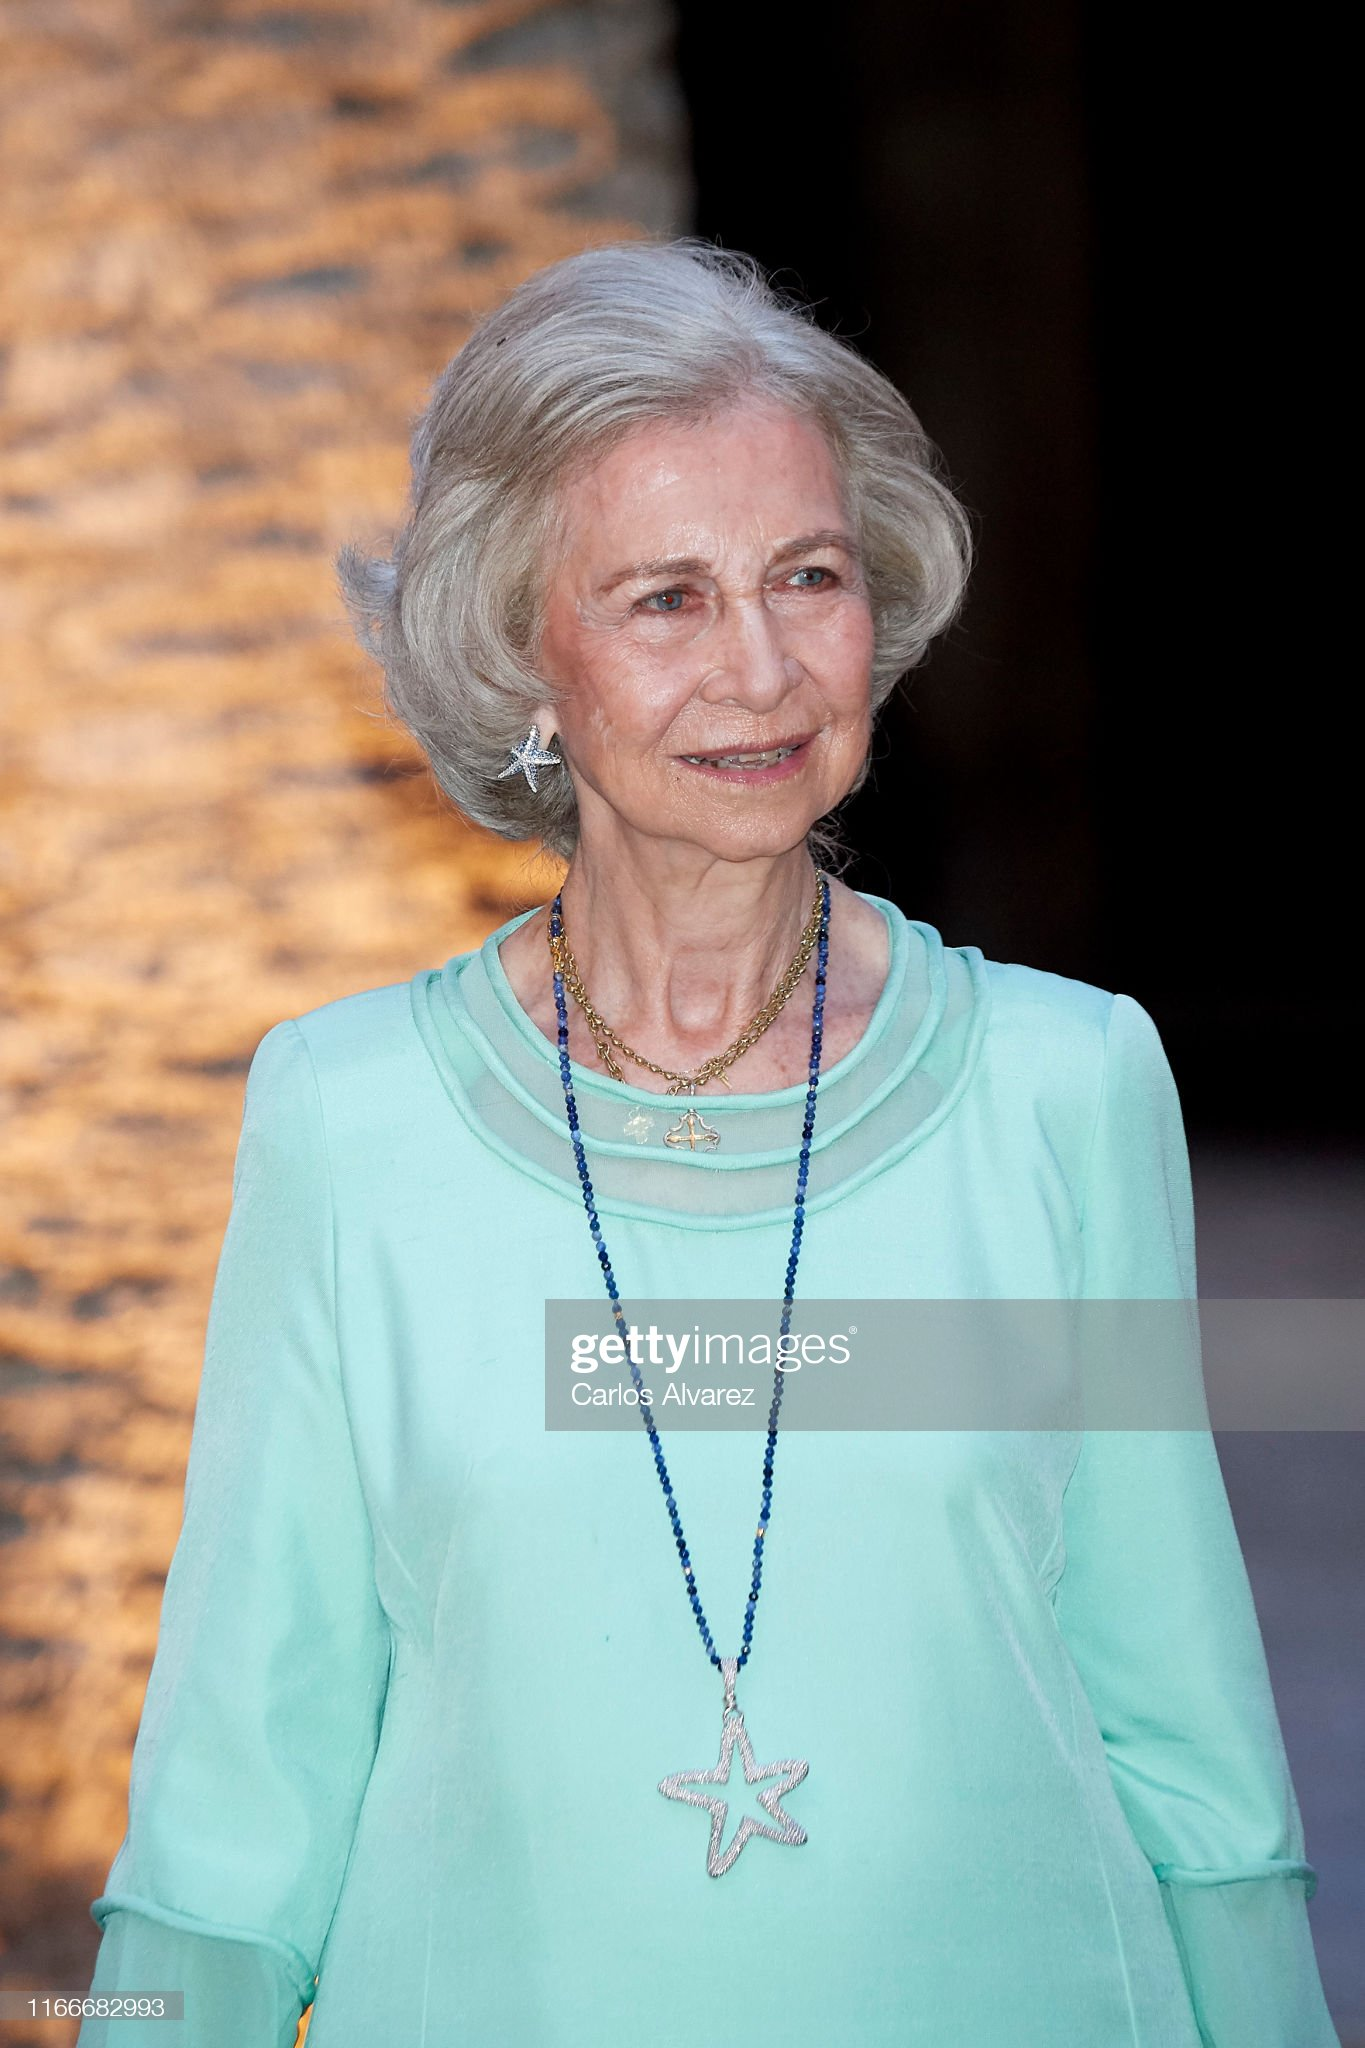 https://media.gettyimages.com/photos/queen-sofia-hosts-a-dinner-for-authorities-at-the-almudaina-palace-on-picture-id1166682993?s=2048x2048